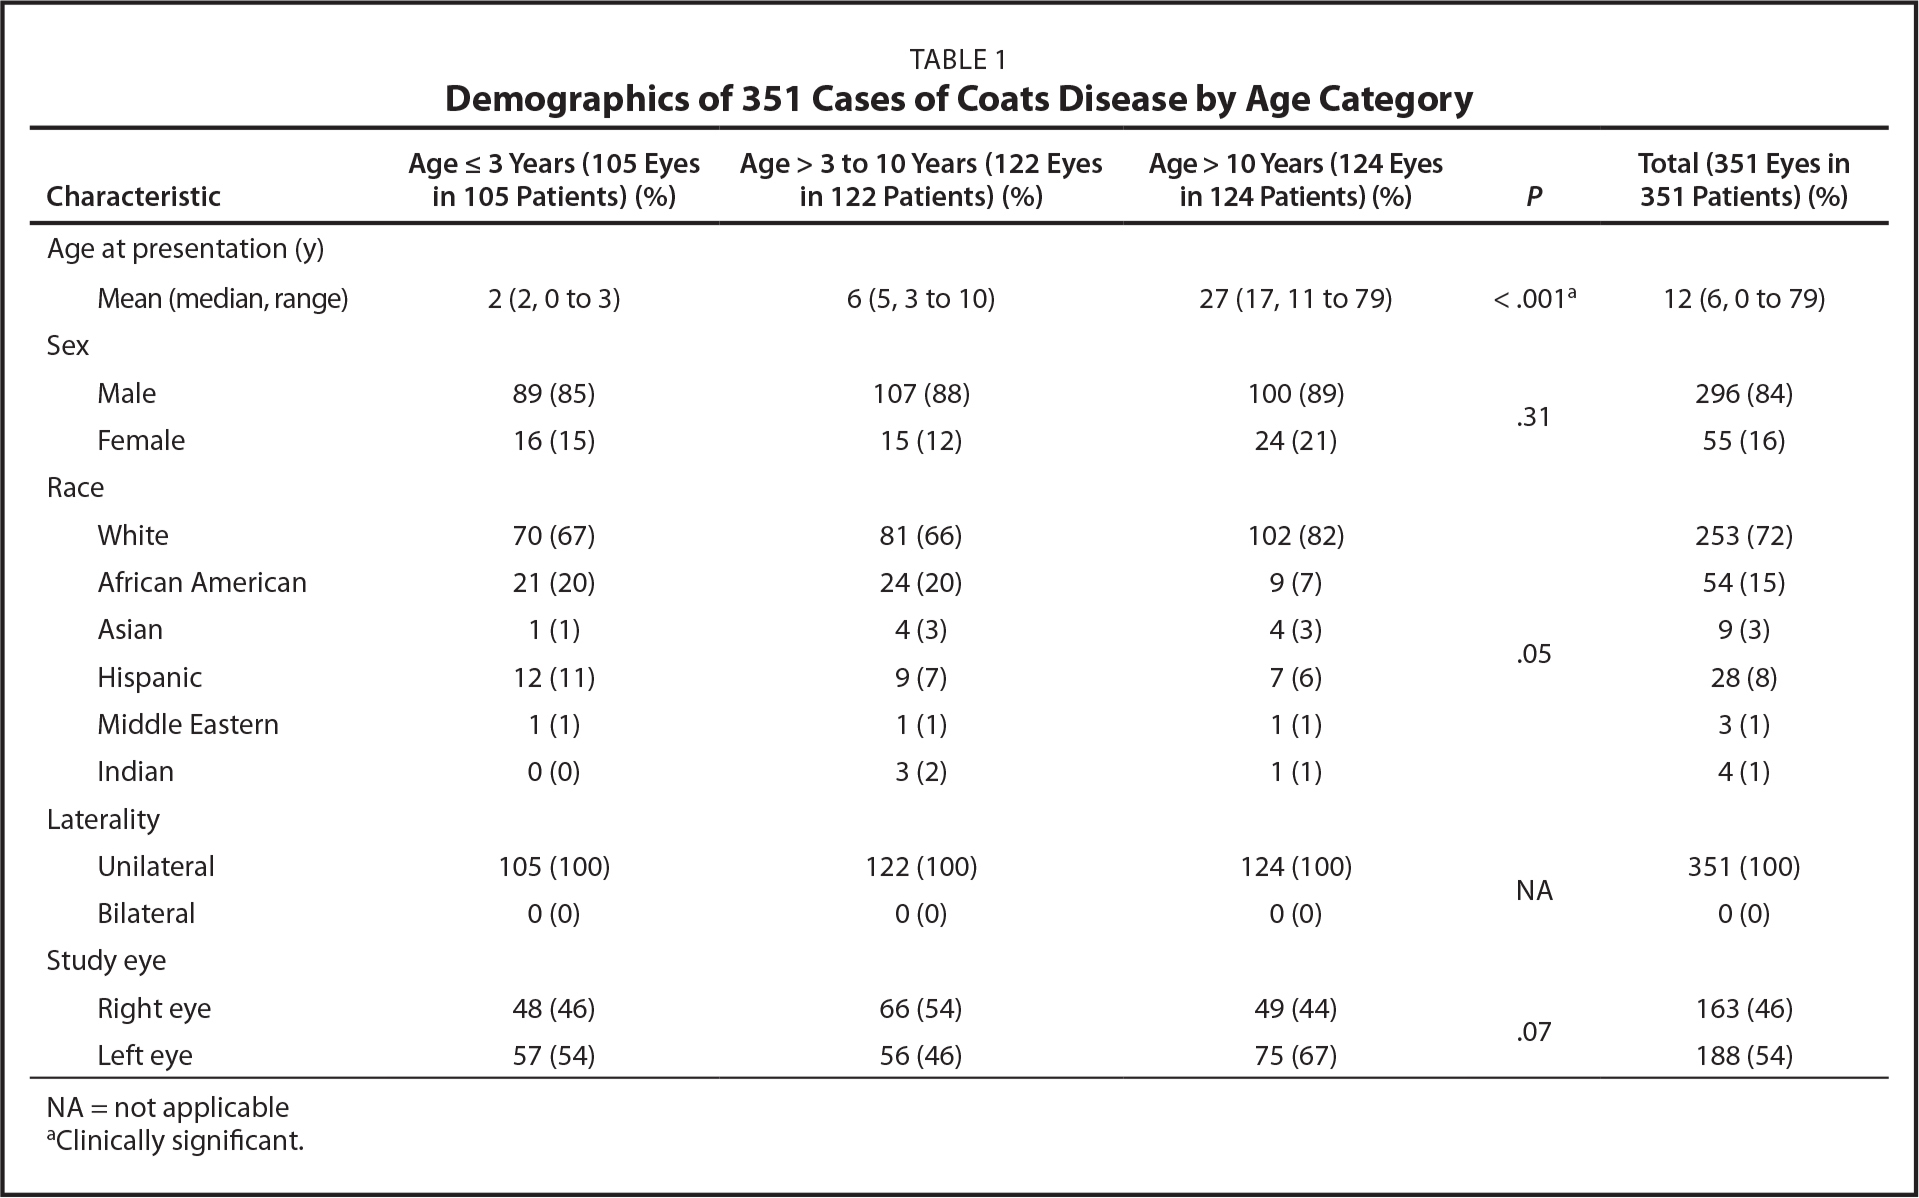 Demographics of 351 Cases of Coats Disease by Age Category